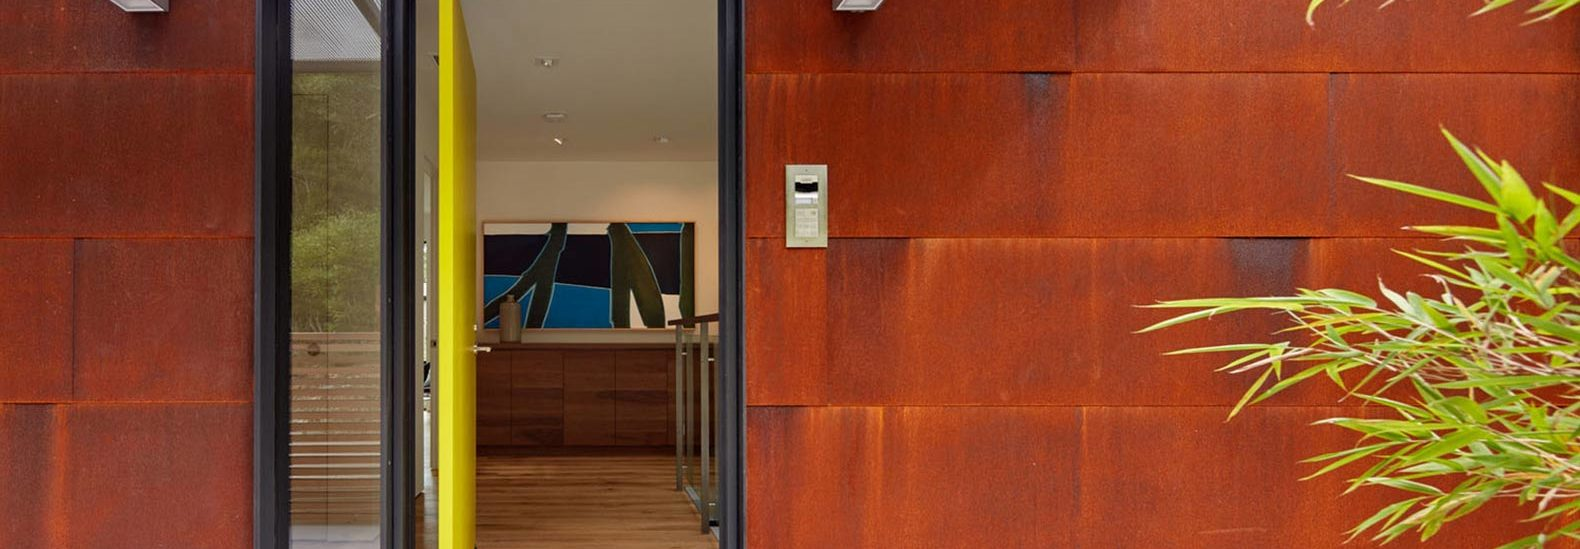 Stunning Corten Clad California Home Built For Efficiency And Flexibility